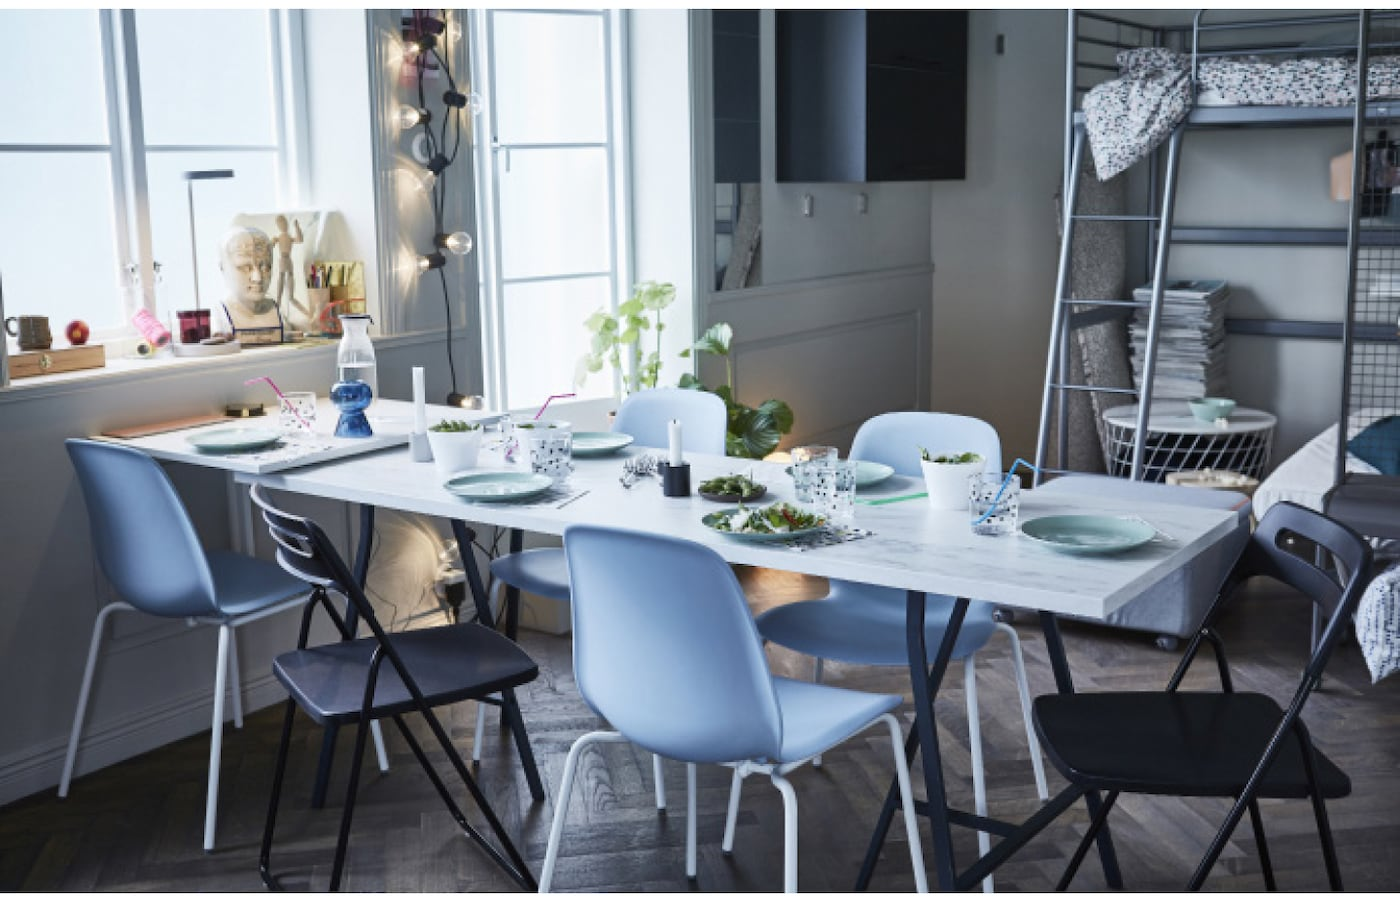 IKEA has furniture for small spaces like EKBACKEN work top with white marble effect. Use it against a wall as art most of the time. When you have guests over for dinner, put it on trestles for a pop-up table. Add foldable chairs and enjoy the company!